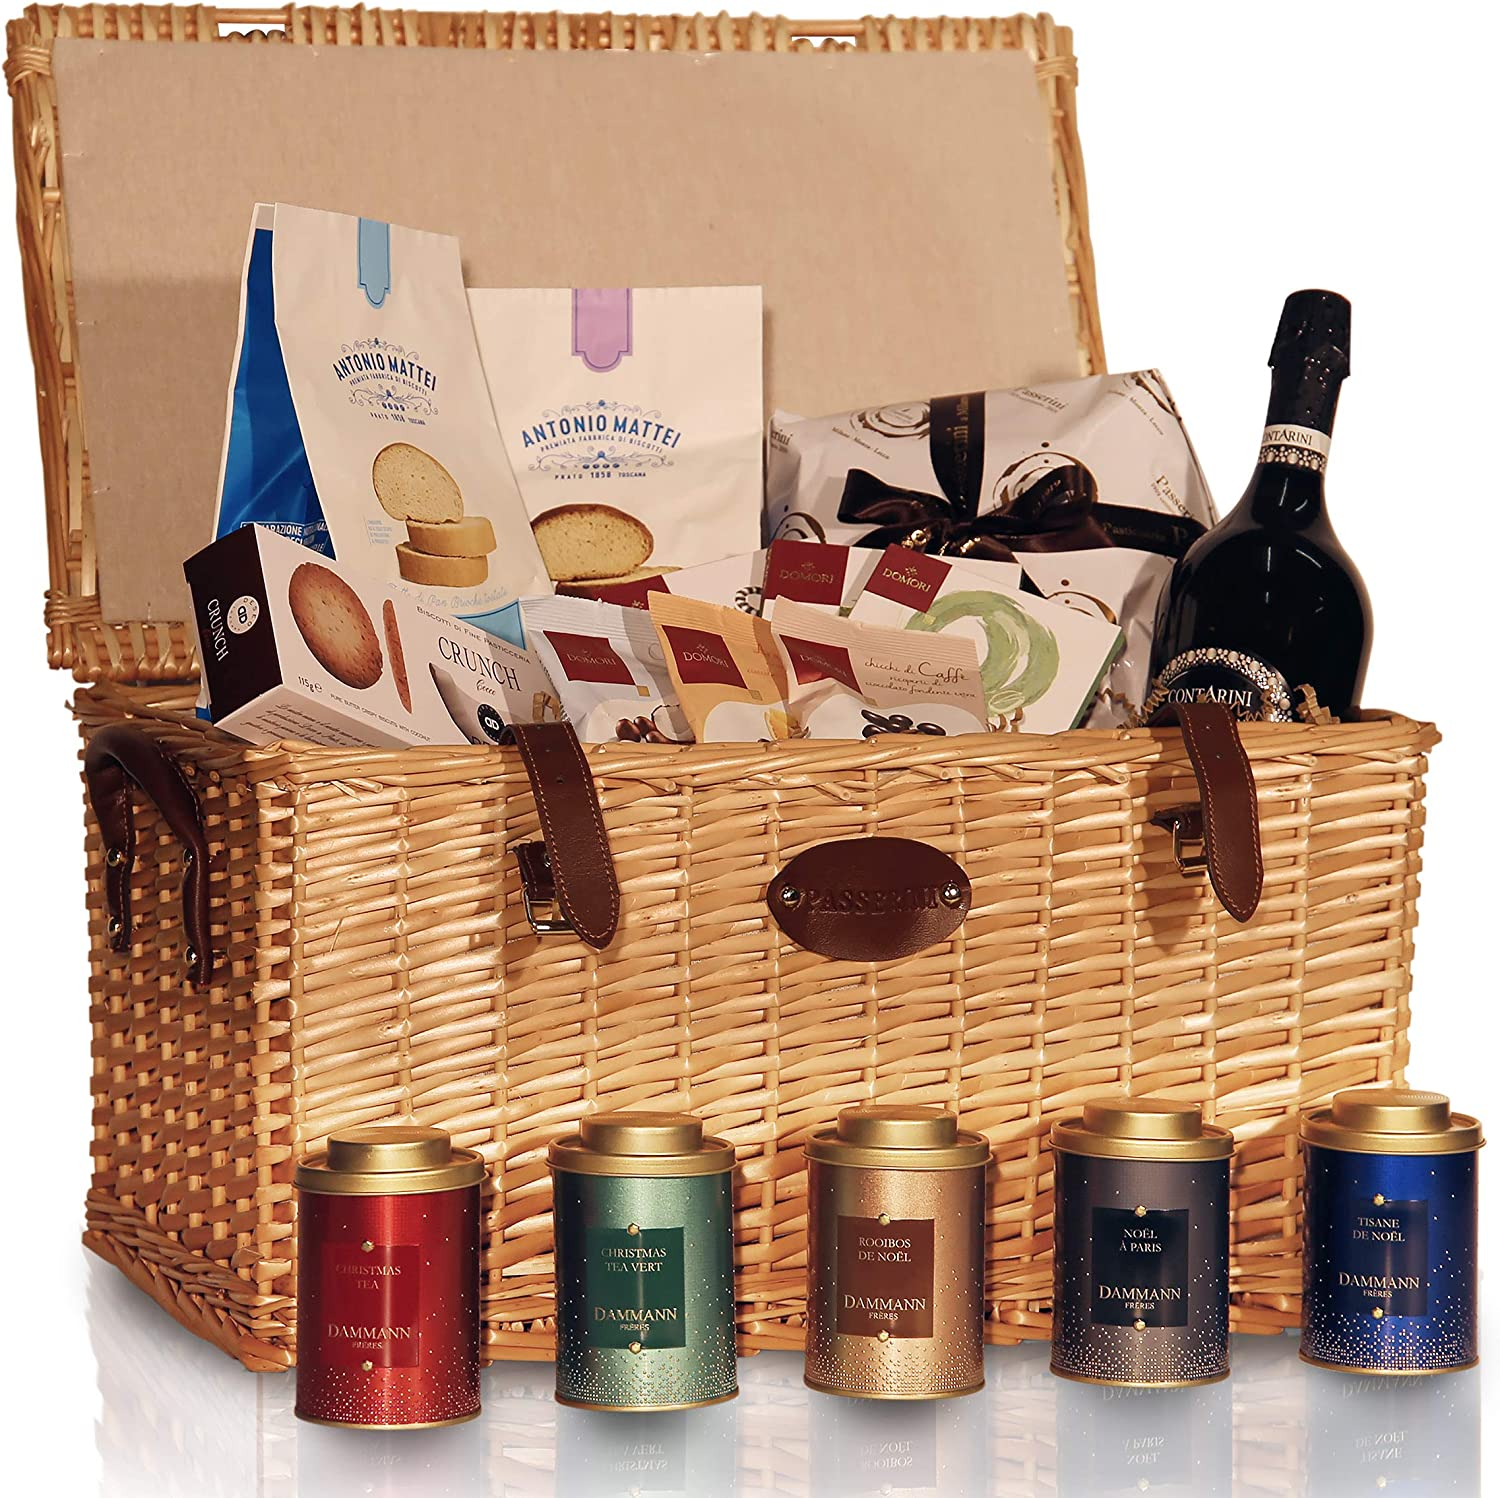 Pasticceria Passerini dal 1919 Christmas Hamper, French & Italian Specialities in Vintage Wicker Basket: Panettone, Baked Goods, Chocolate, Tea in Tin Cans